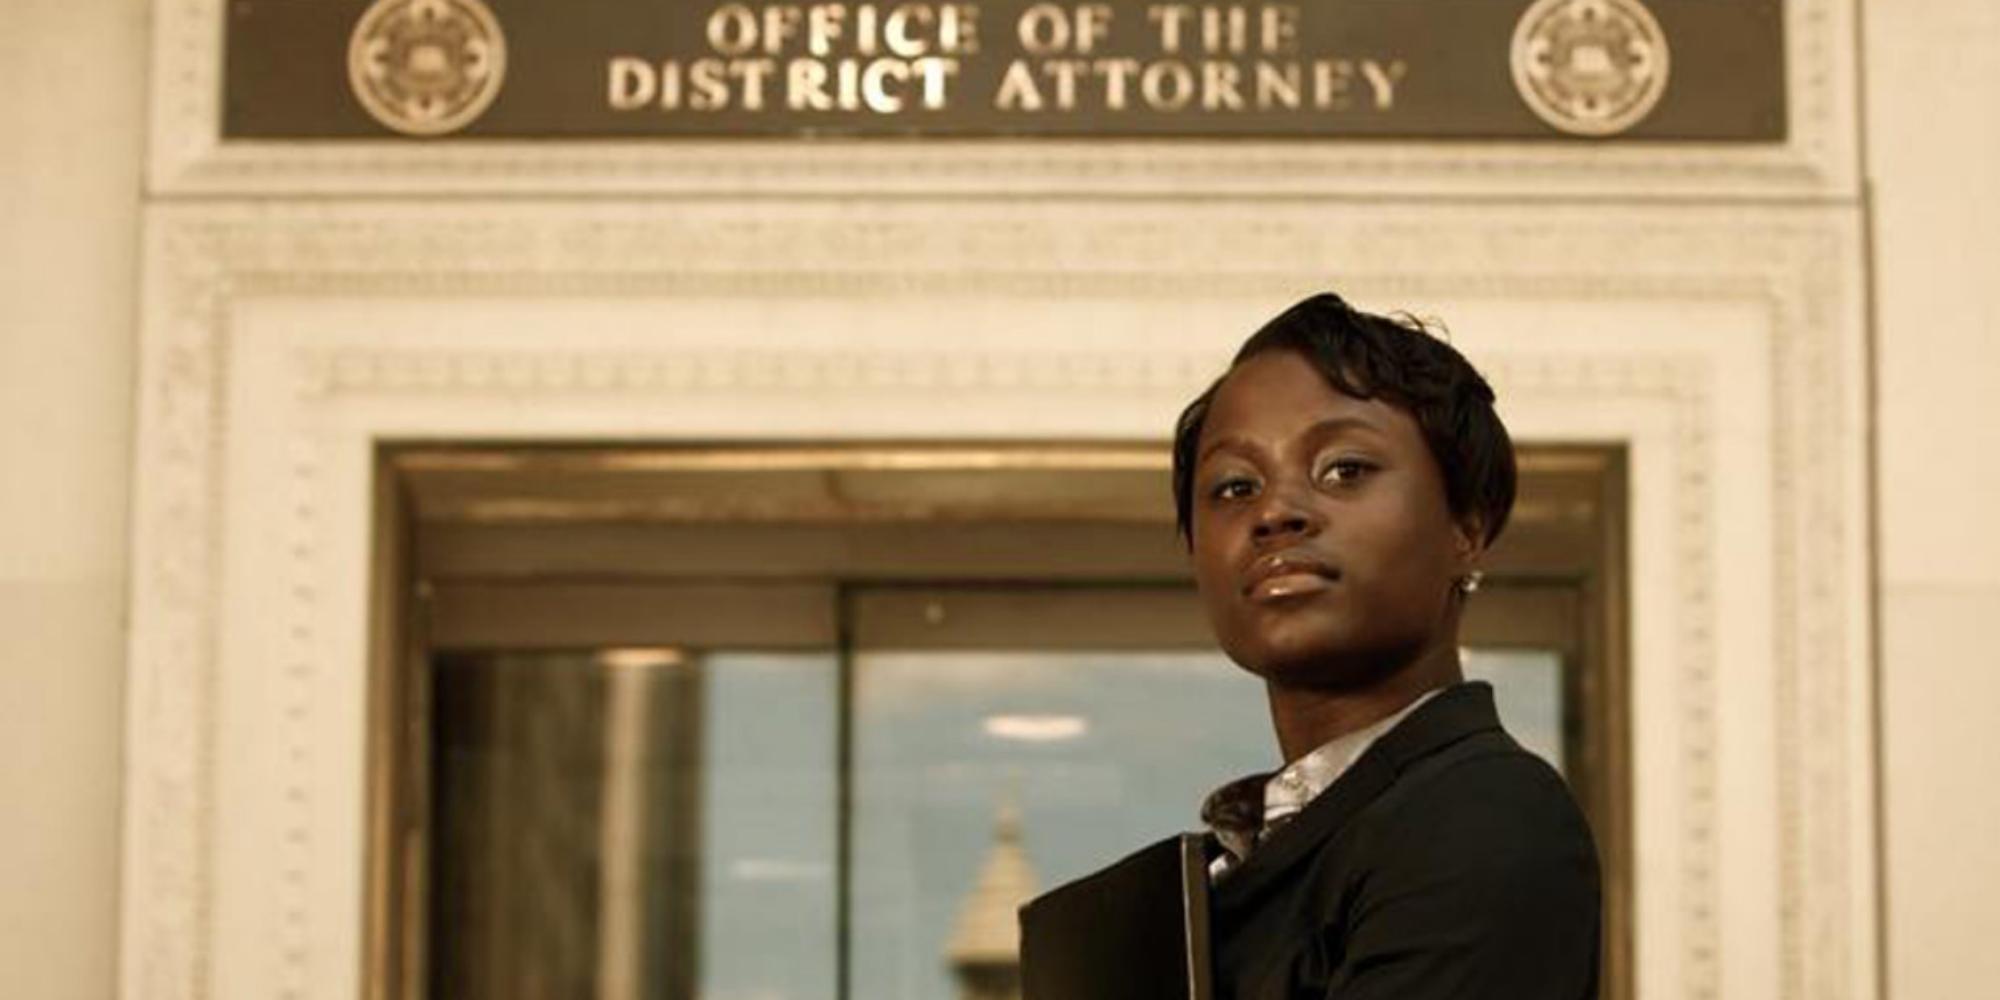 Local Politics 101: The Role of a District Attorney